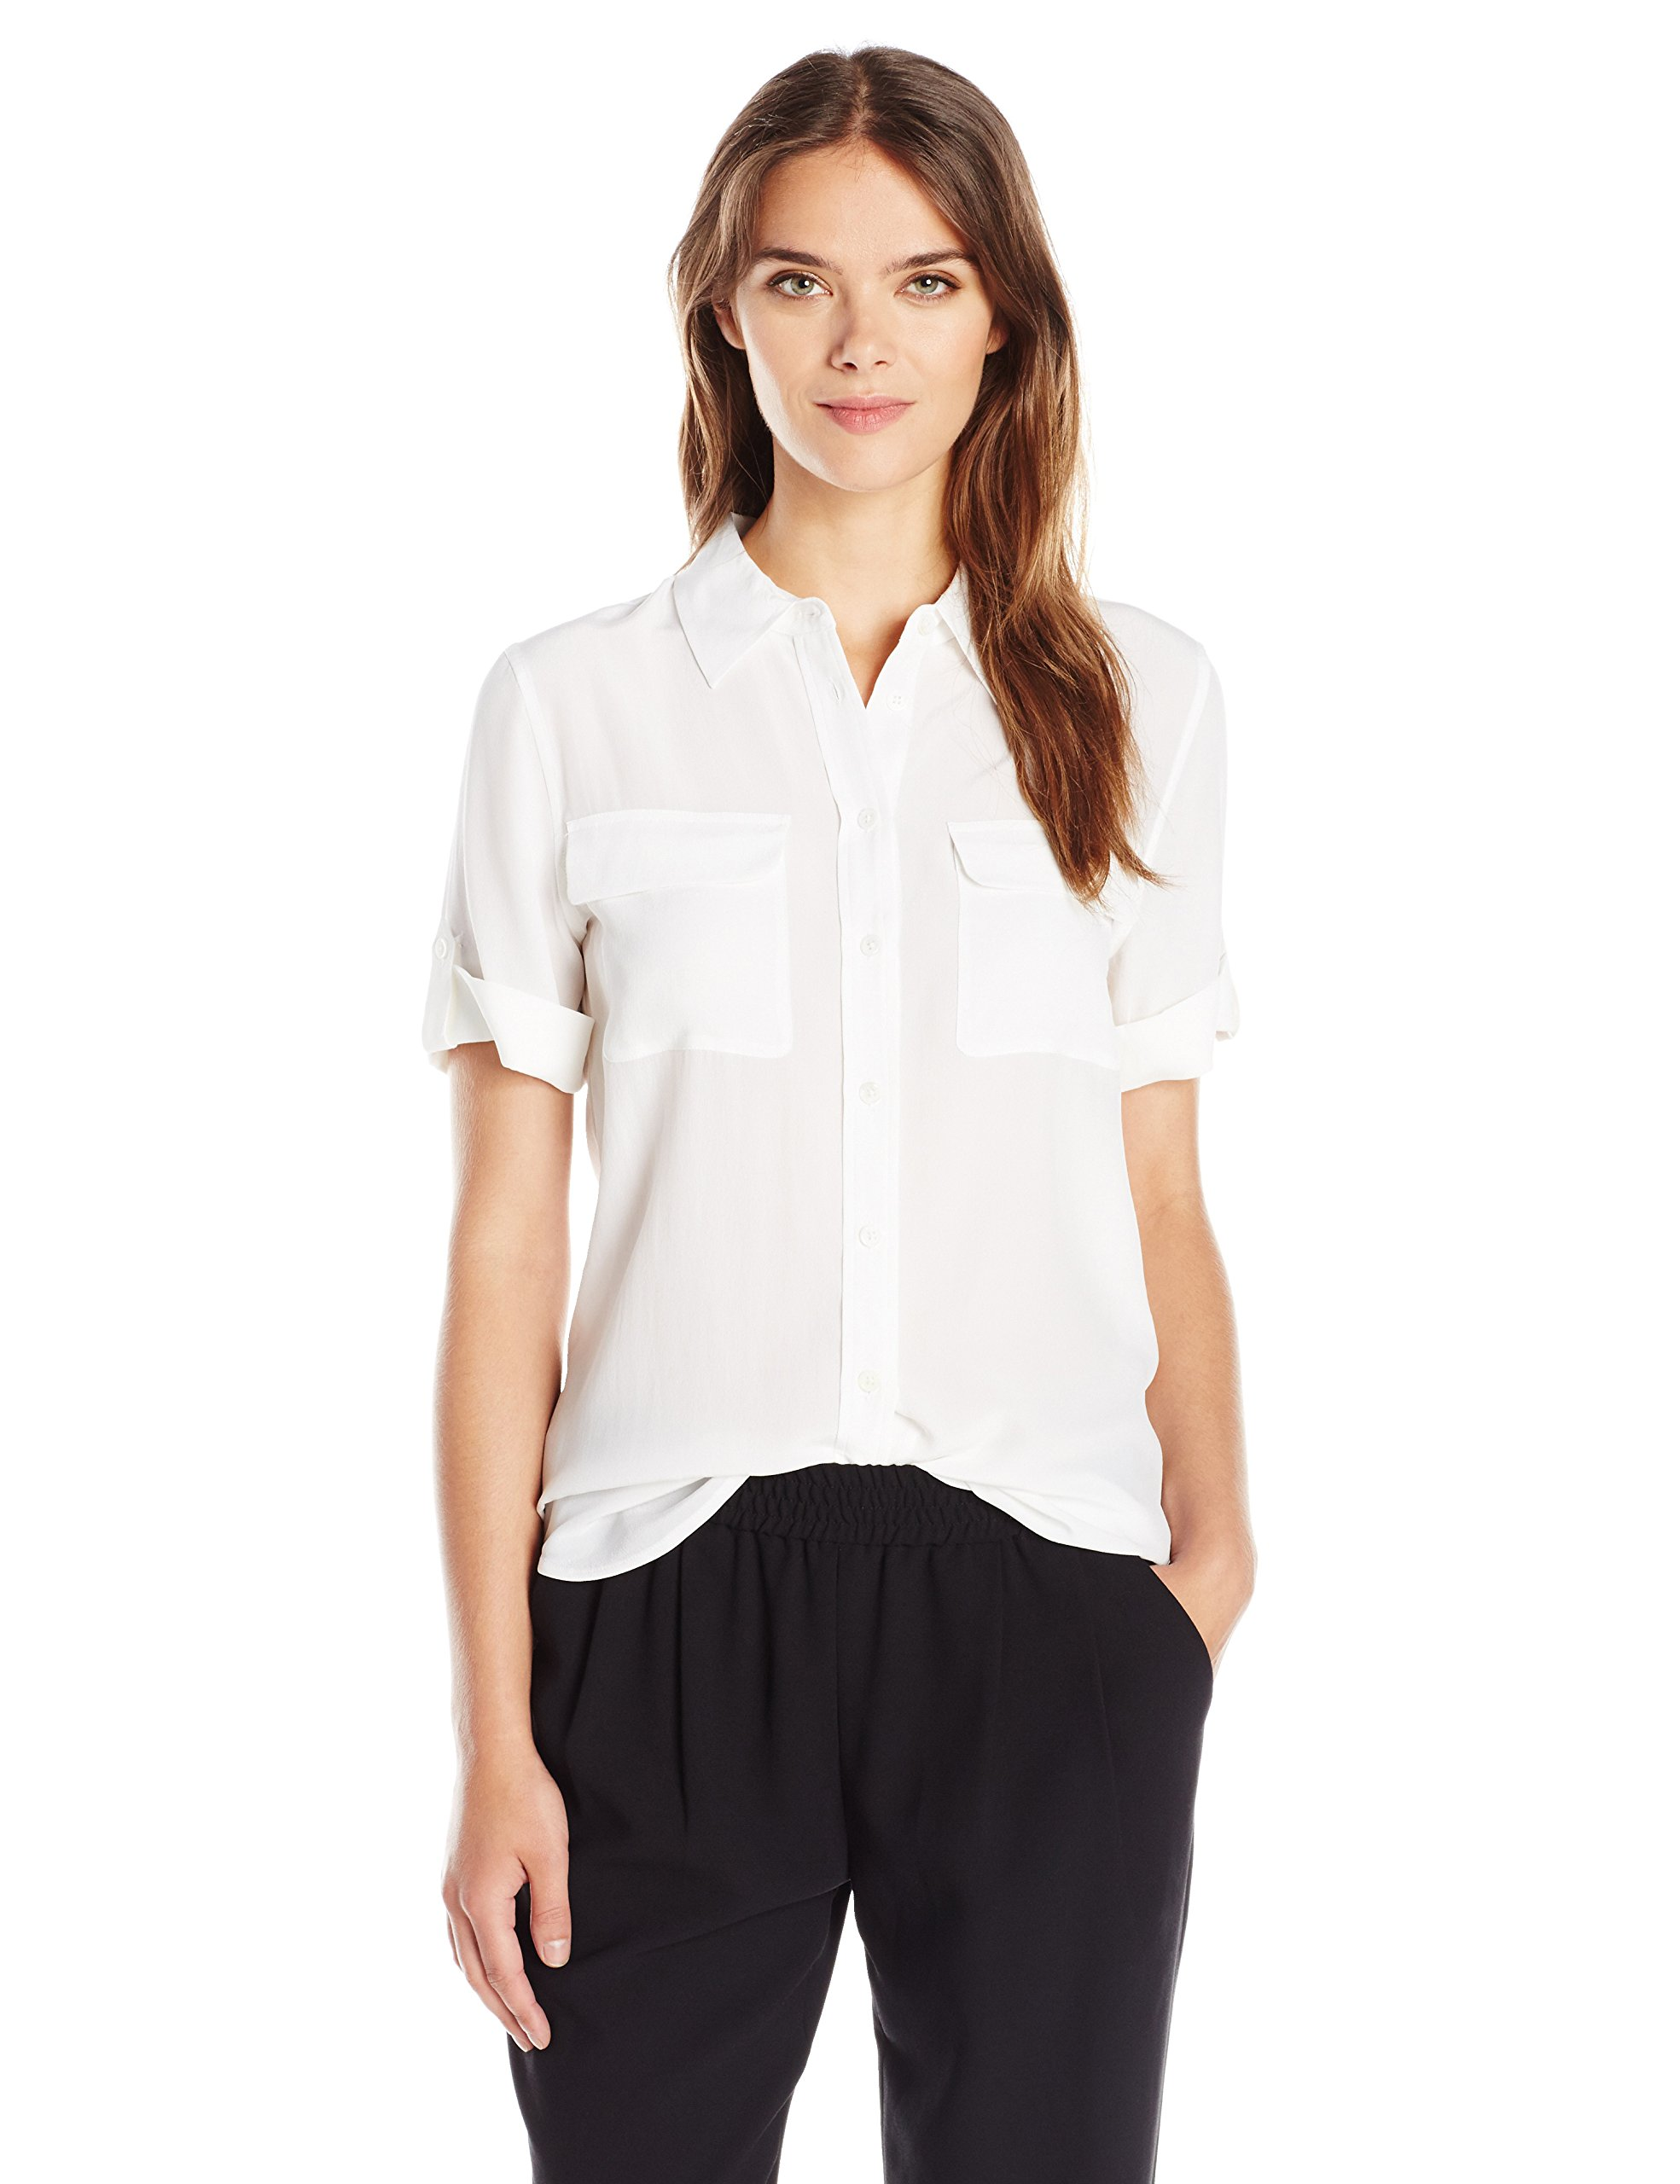 Equipment Women's Short Sleeve Slim Signature, Bright White, Medium